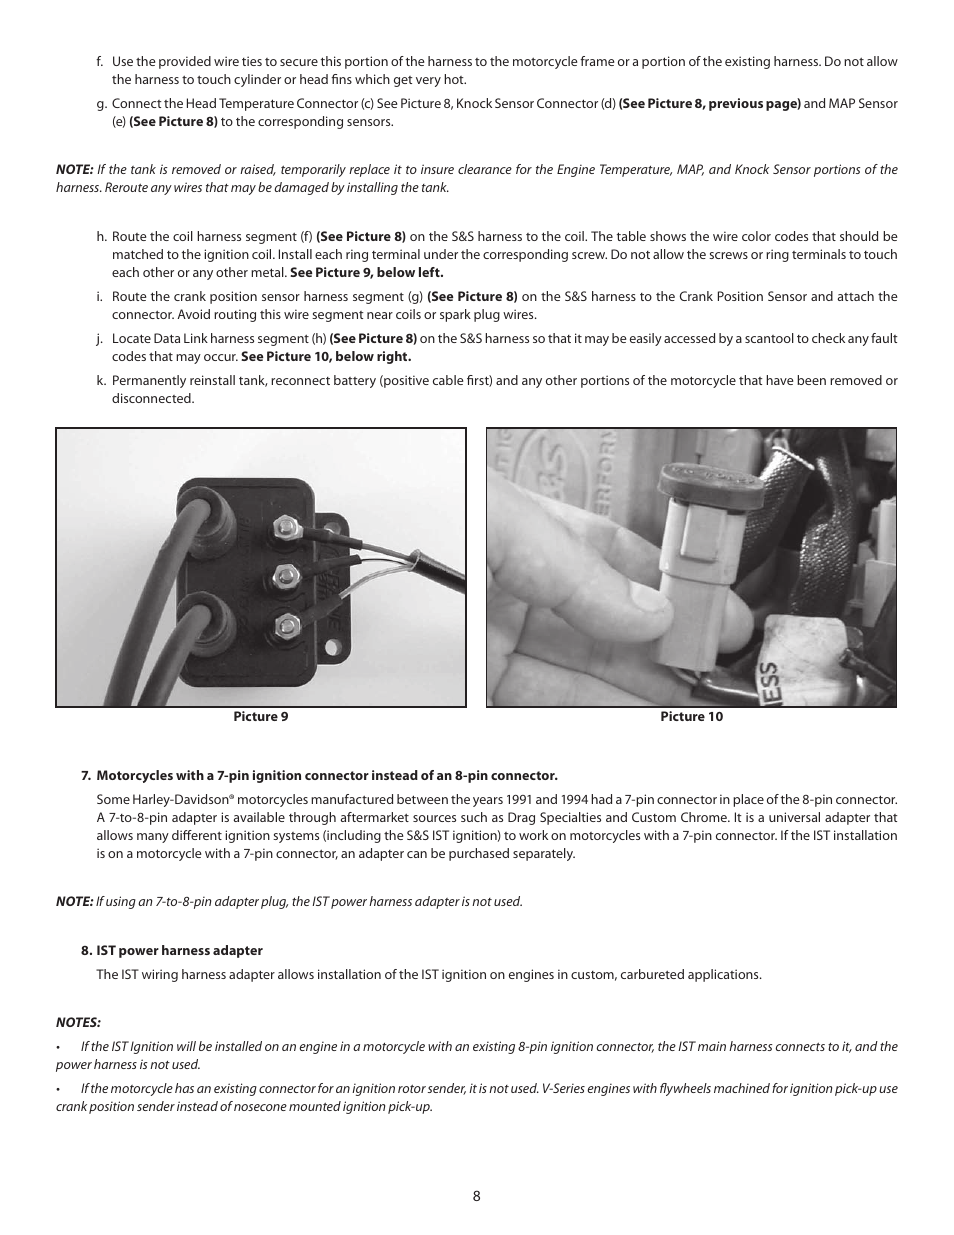 S&S Cycle IST Ignition System for S&S V-Series Engines with Flywheel  Machined for Crank Trigger User Manual | Page 8 / 14